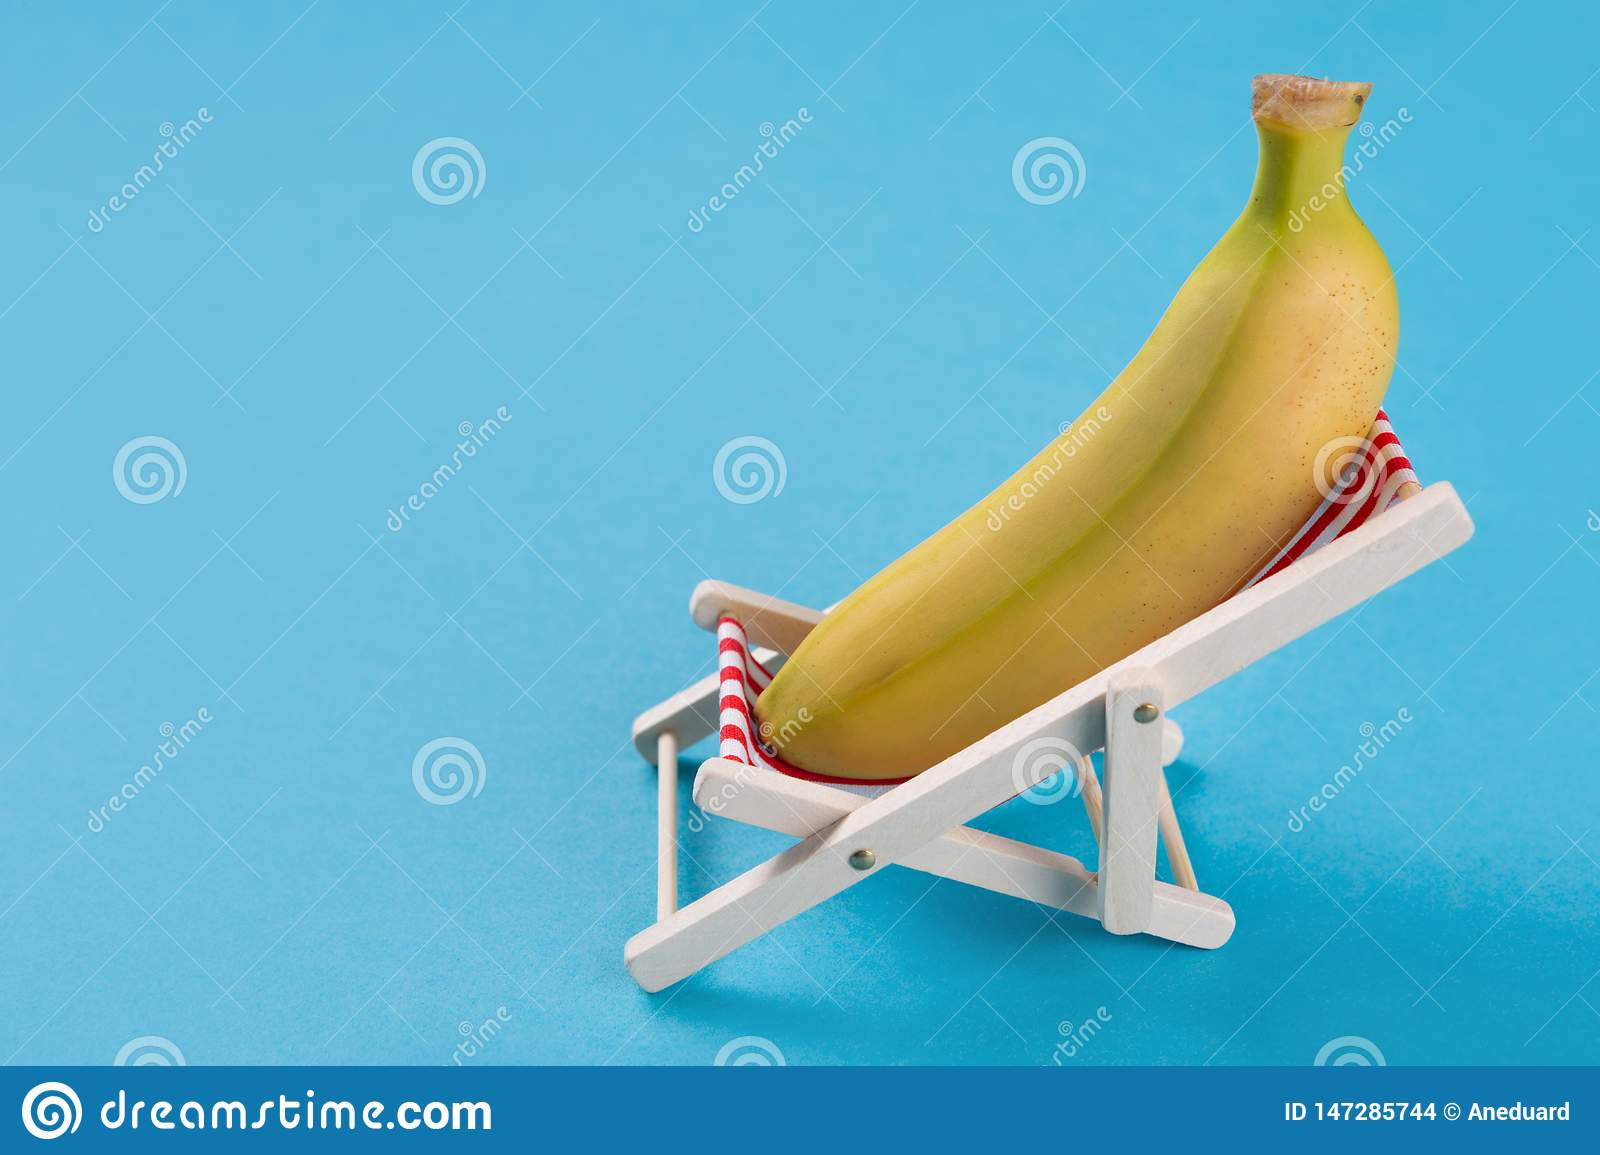 Wondrous Banana Lies In A Lounge Chair On A Blue Background Concept Beatyapartments Chair Design Images Beatyapartmentscom